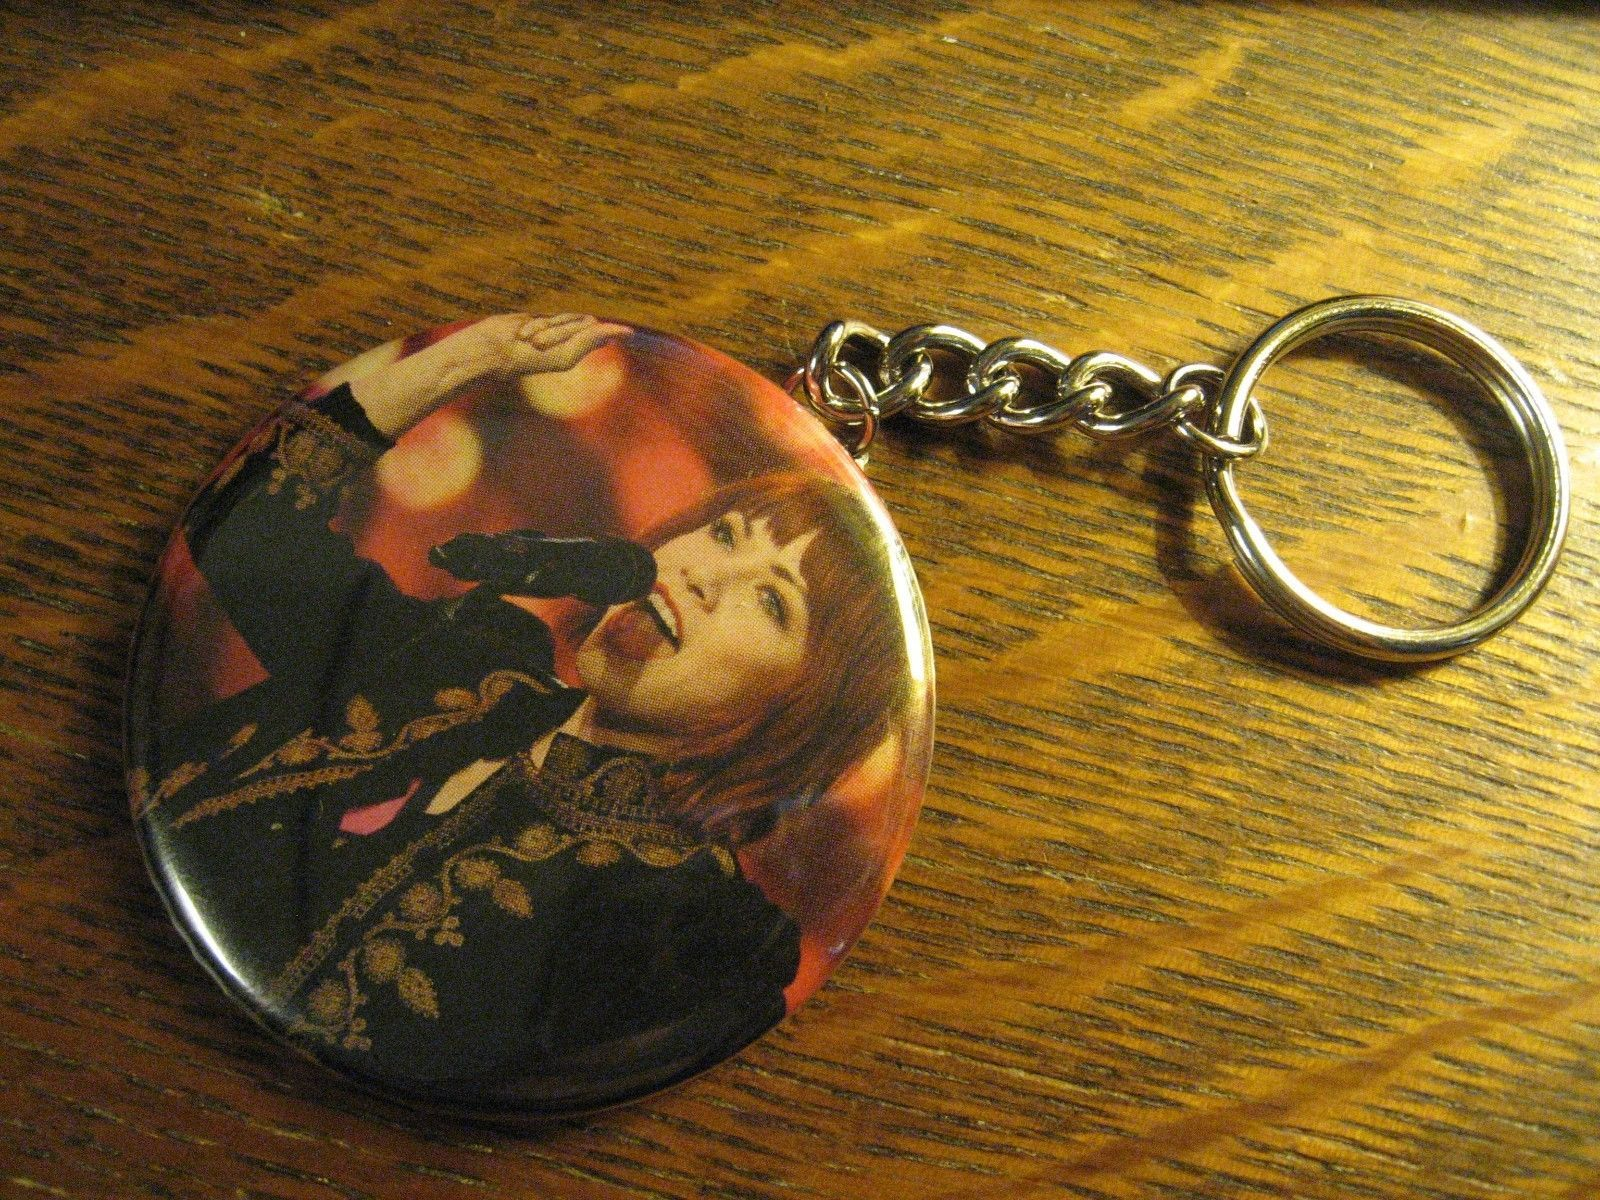 Carly Rae Jepsen Keychain -  Repurposed Magazine Backpack Purse Clip Ornament